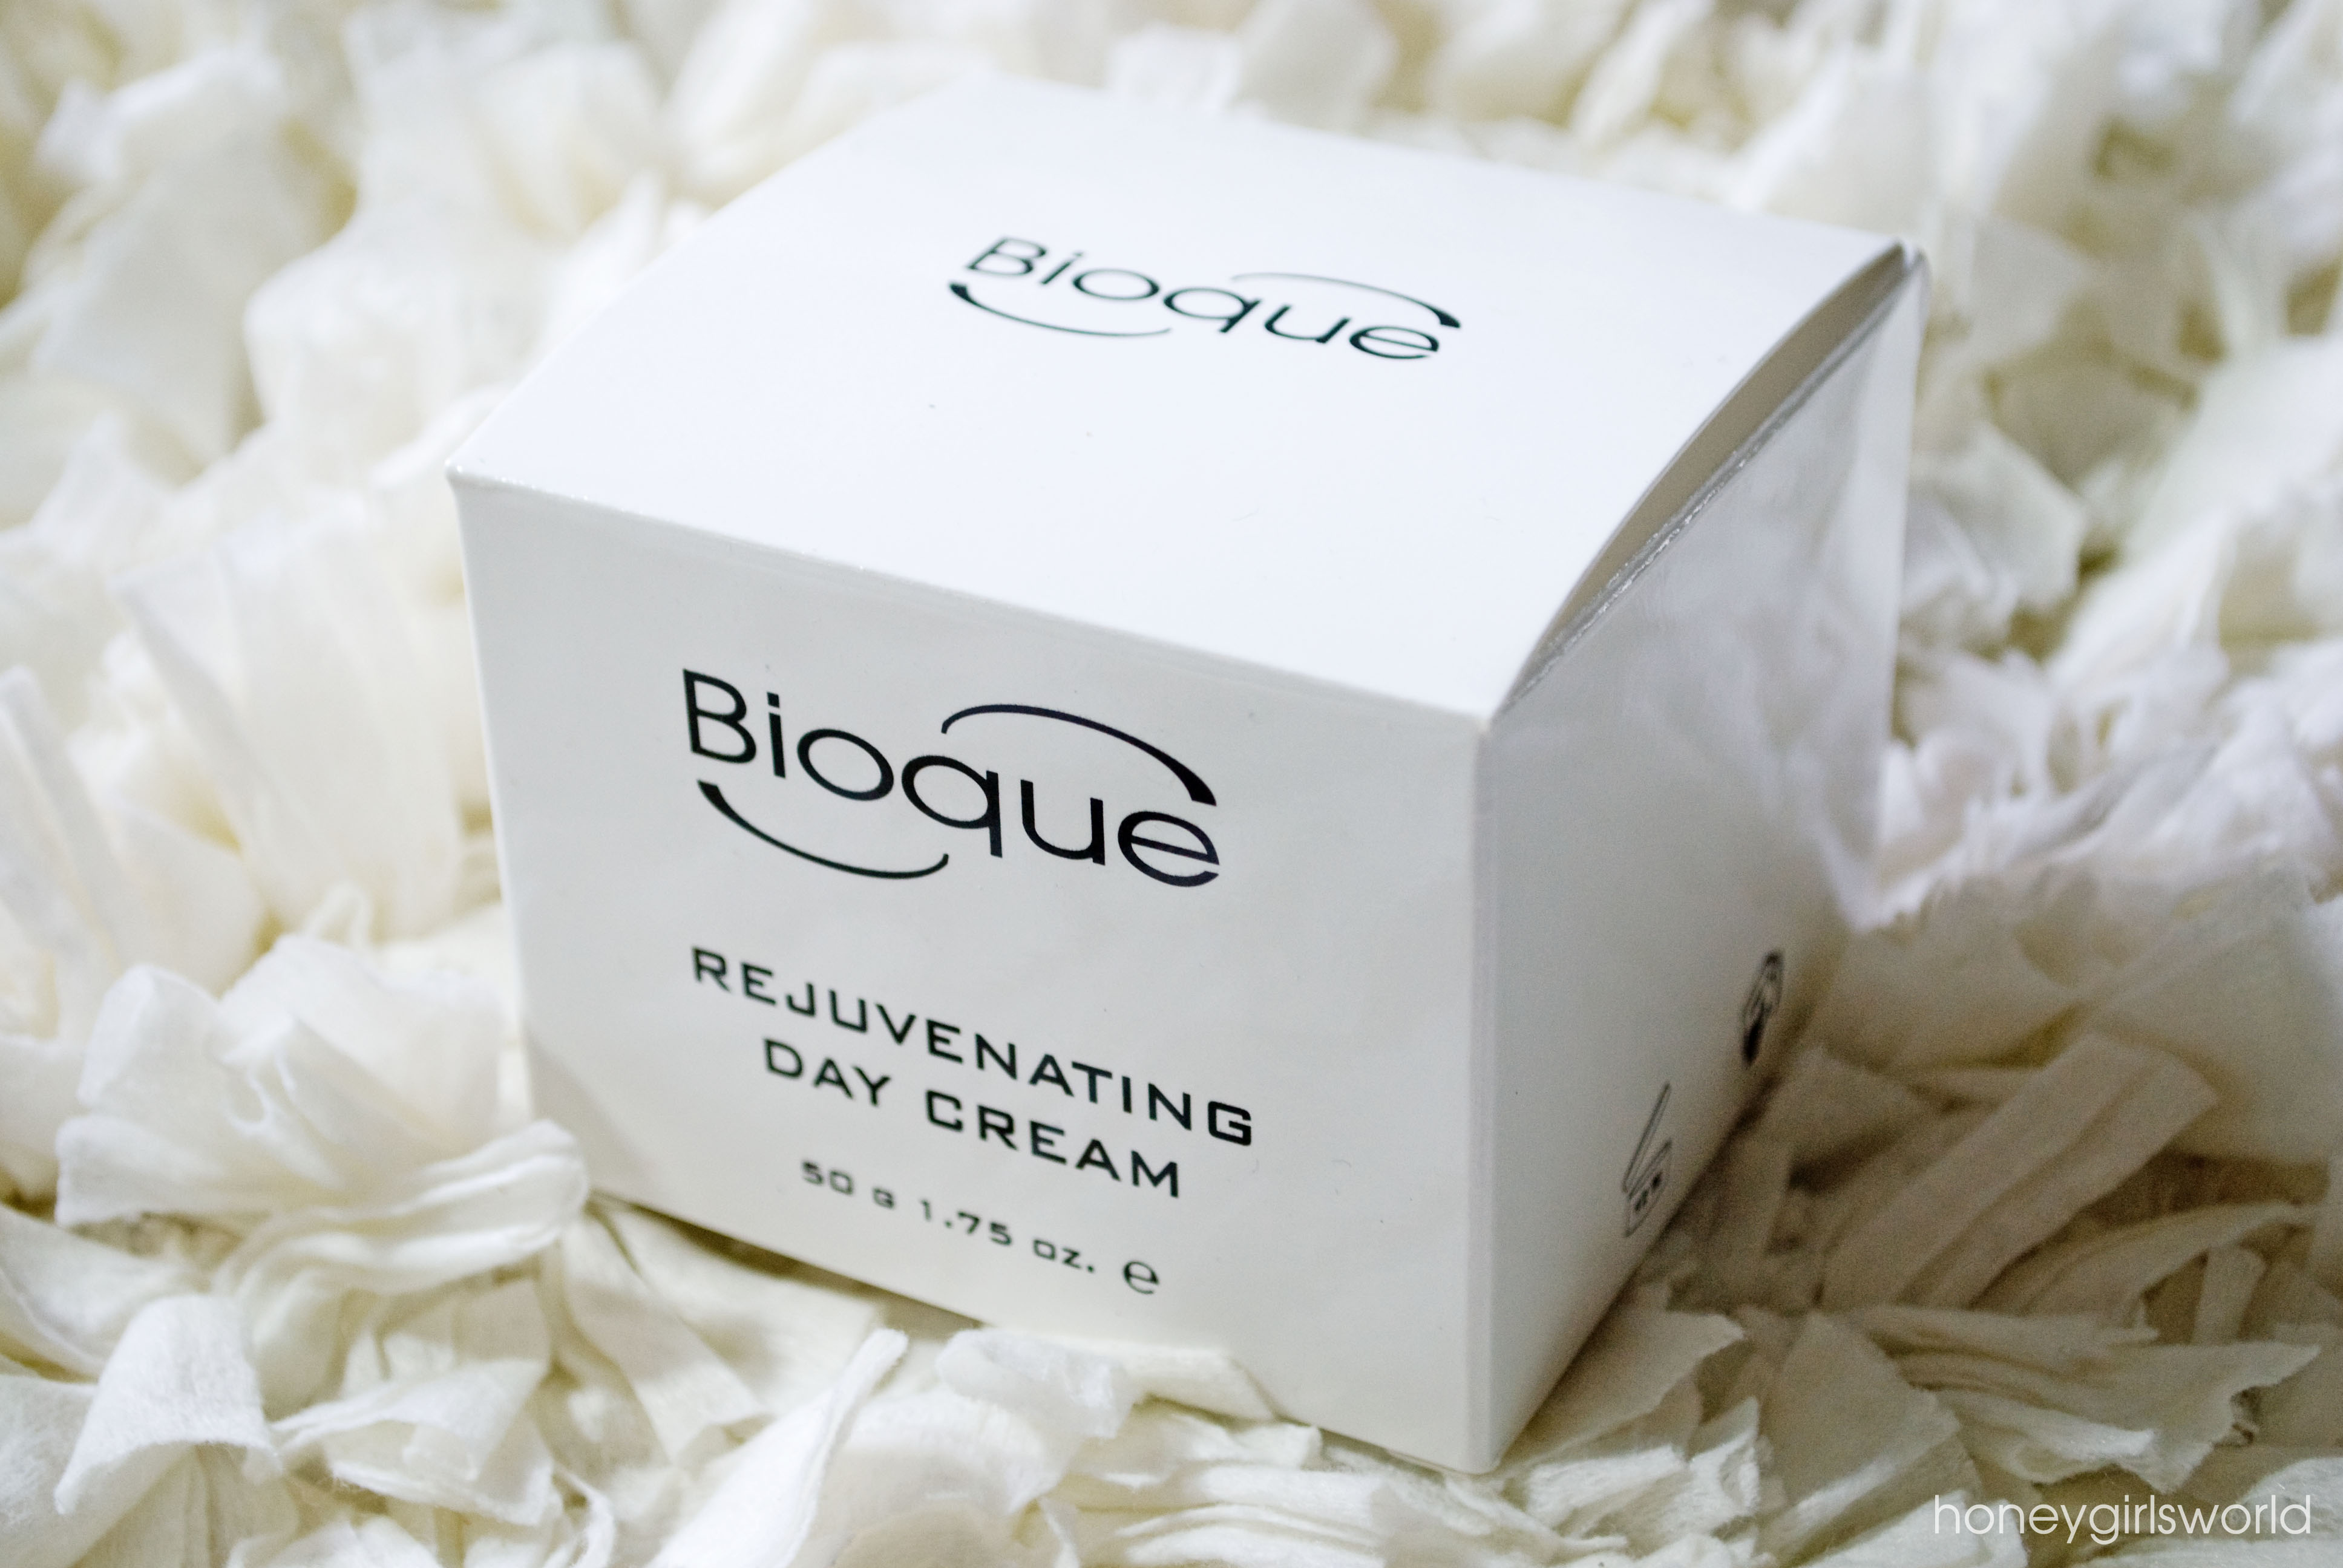 Bioque Rejuvenating Day Cream